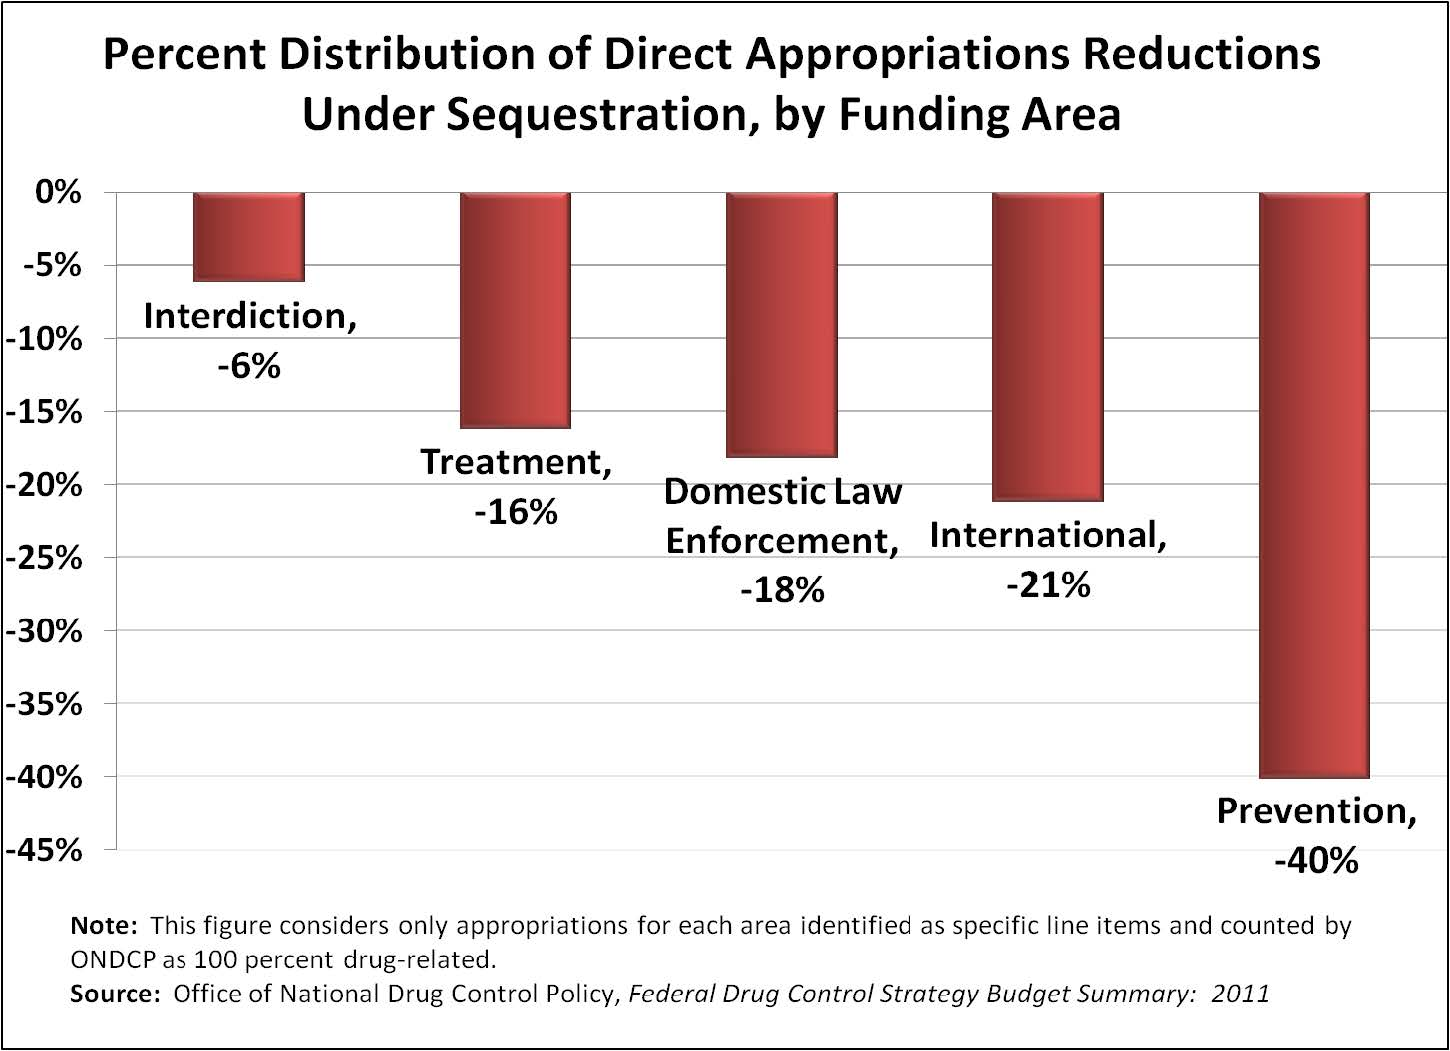 The Federal Drug Budget Under Sequestration